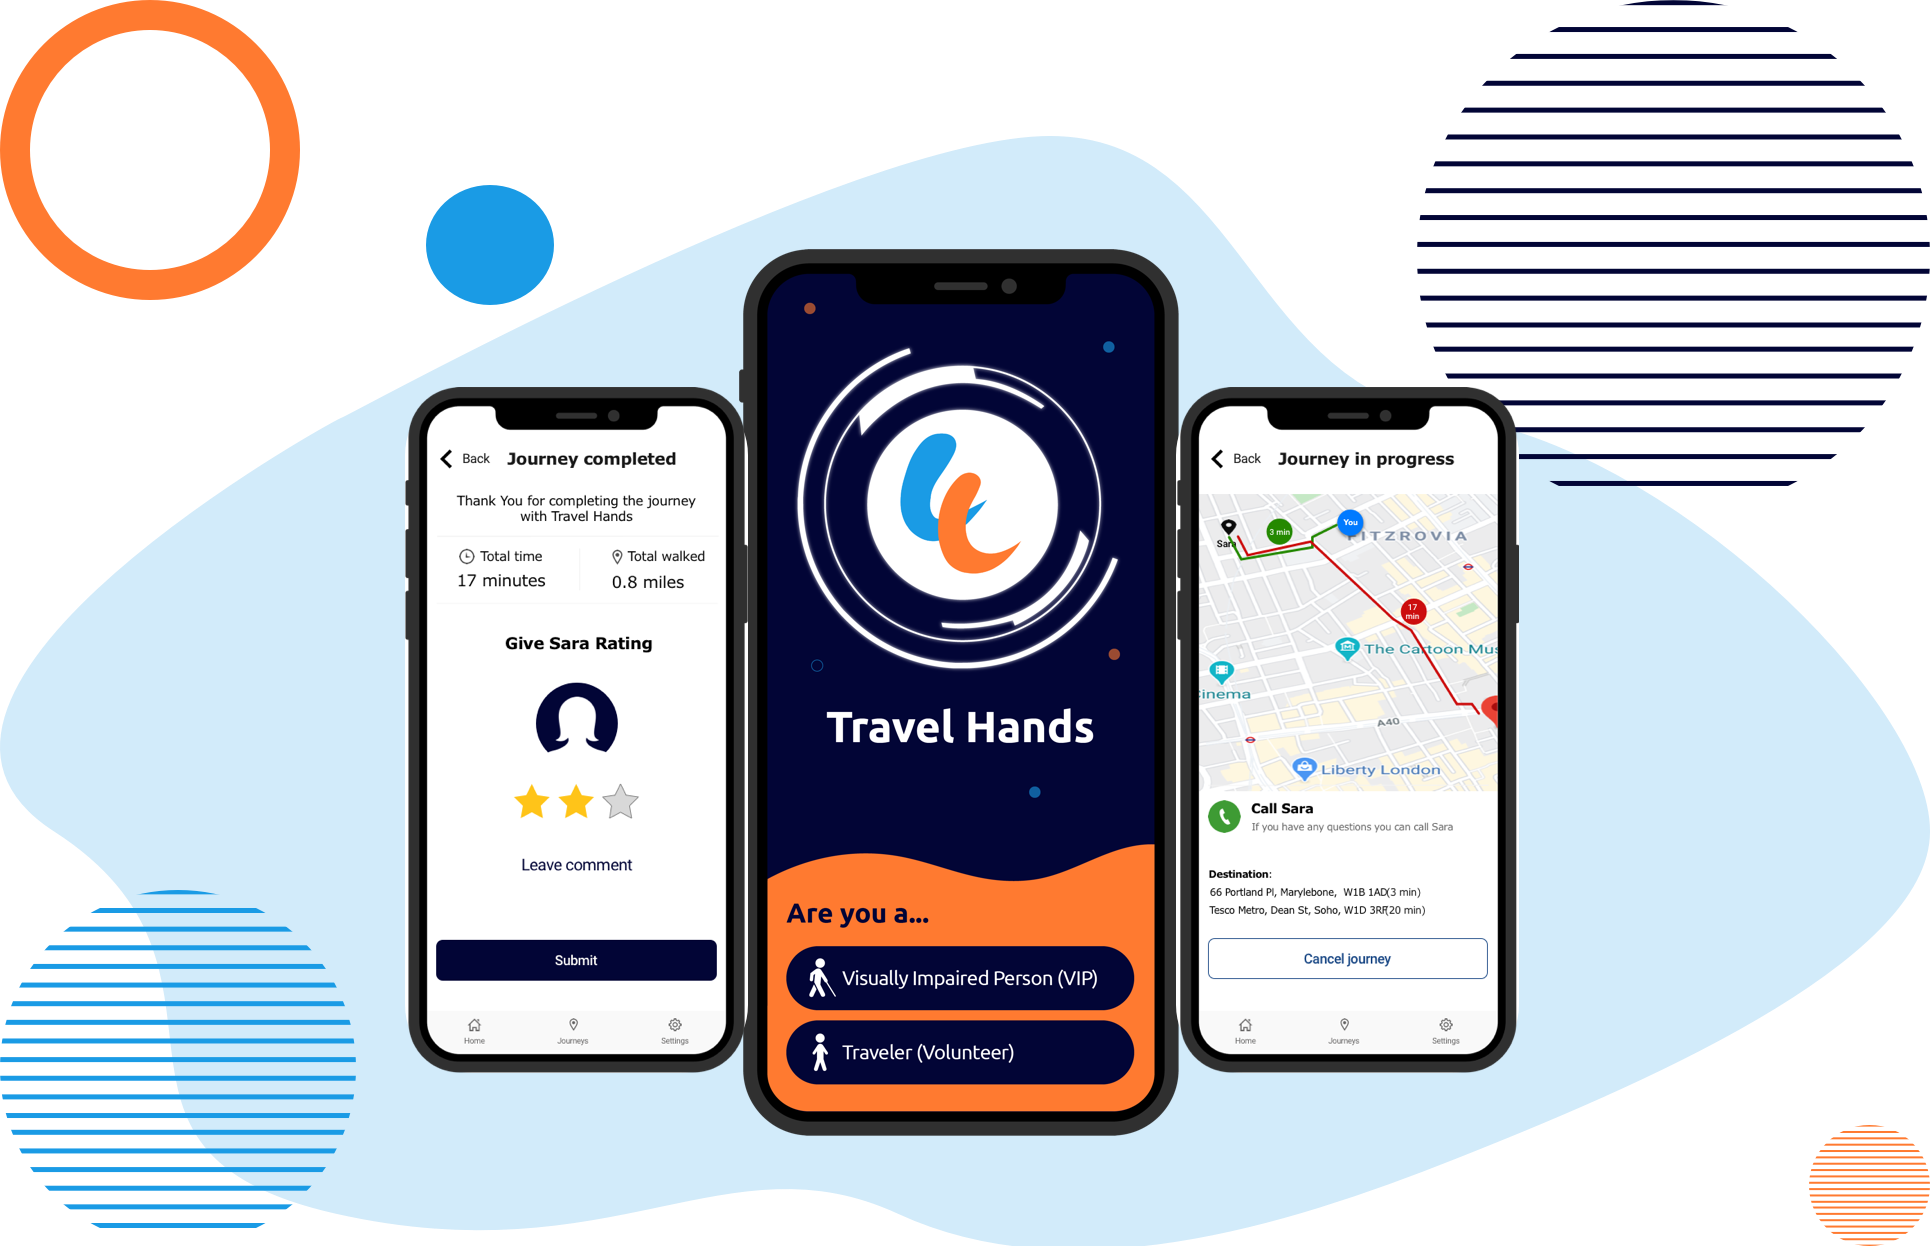 Screens of travel hands application showing log in, journey in progress and giving a rating